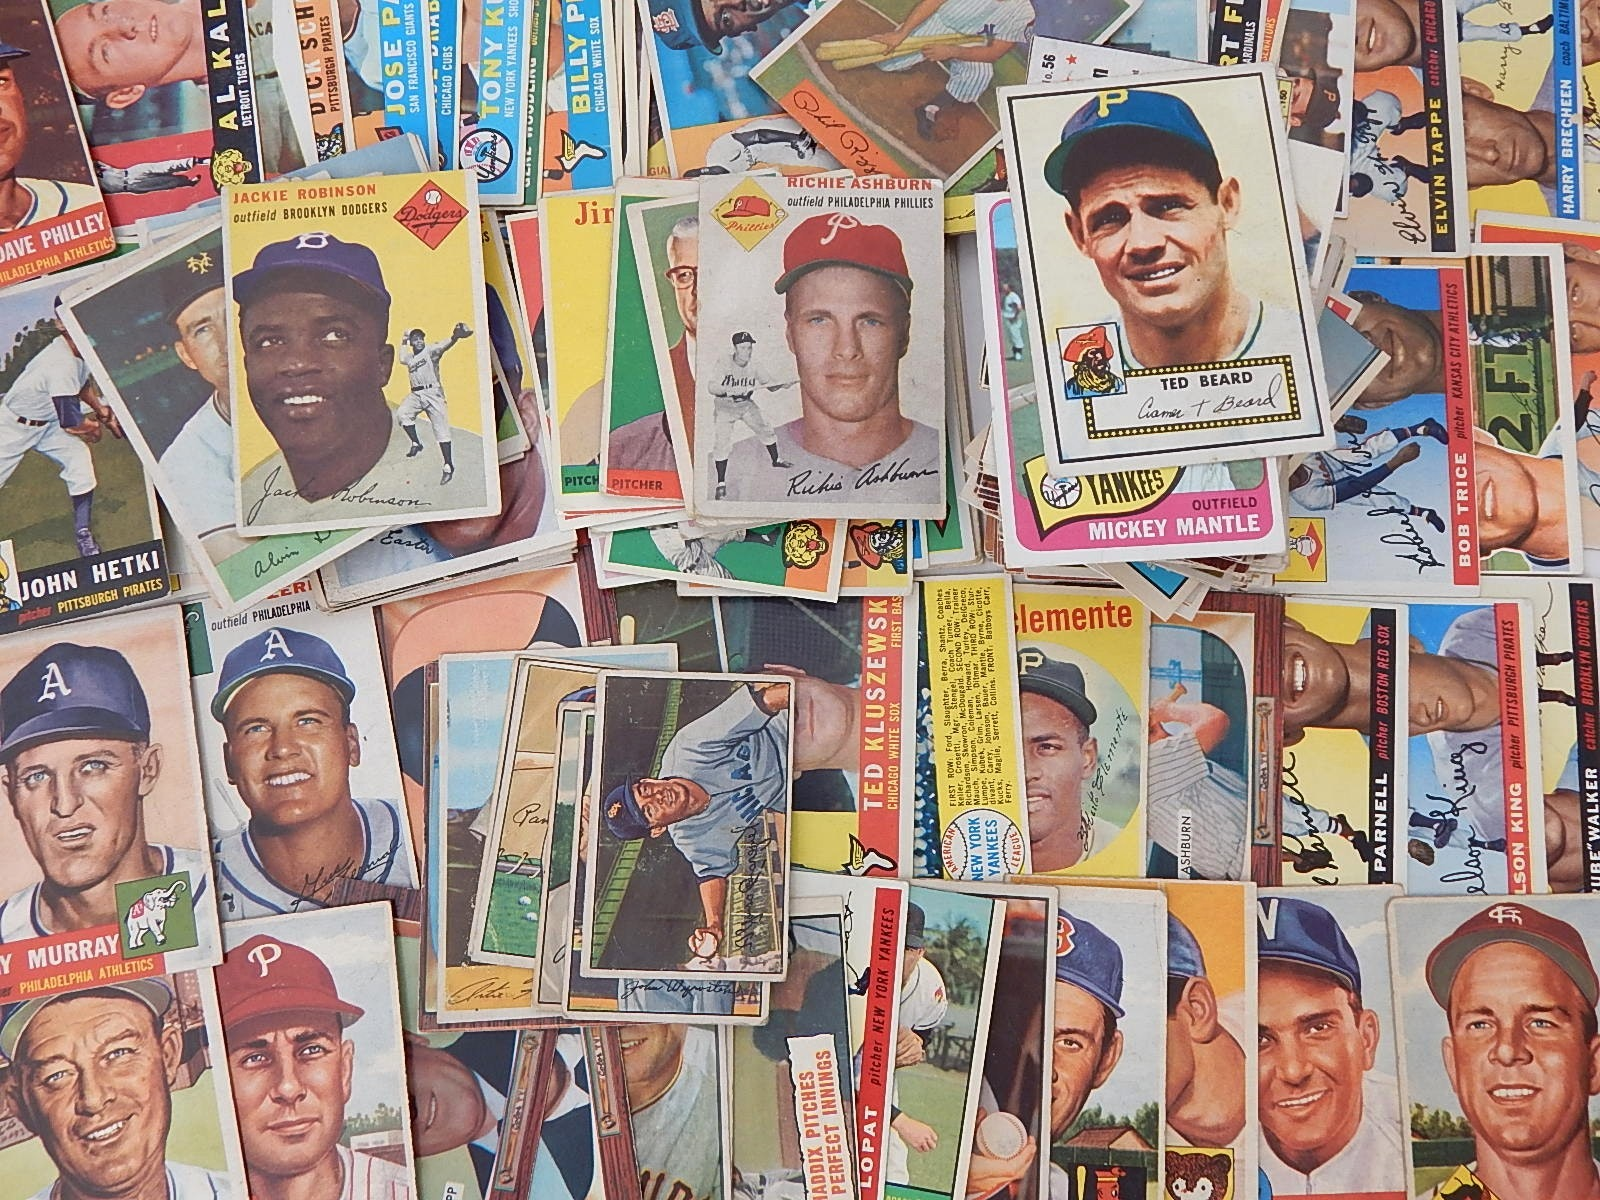 1951 to 1962 TOPPS and Bowman Baseball Card Collection plus 1967 Mickey Mantle